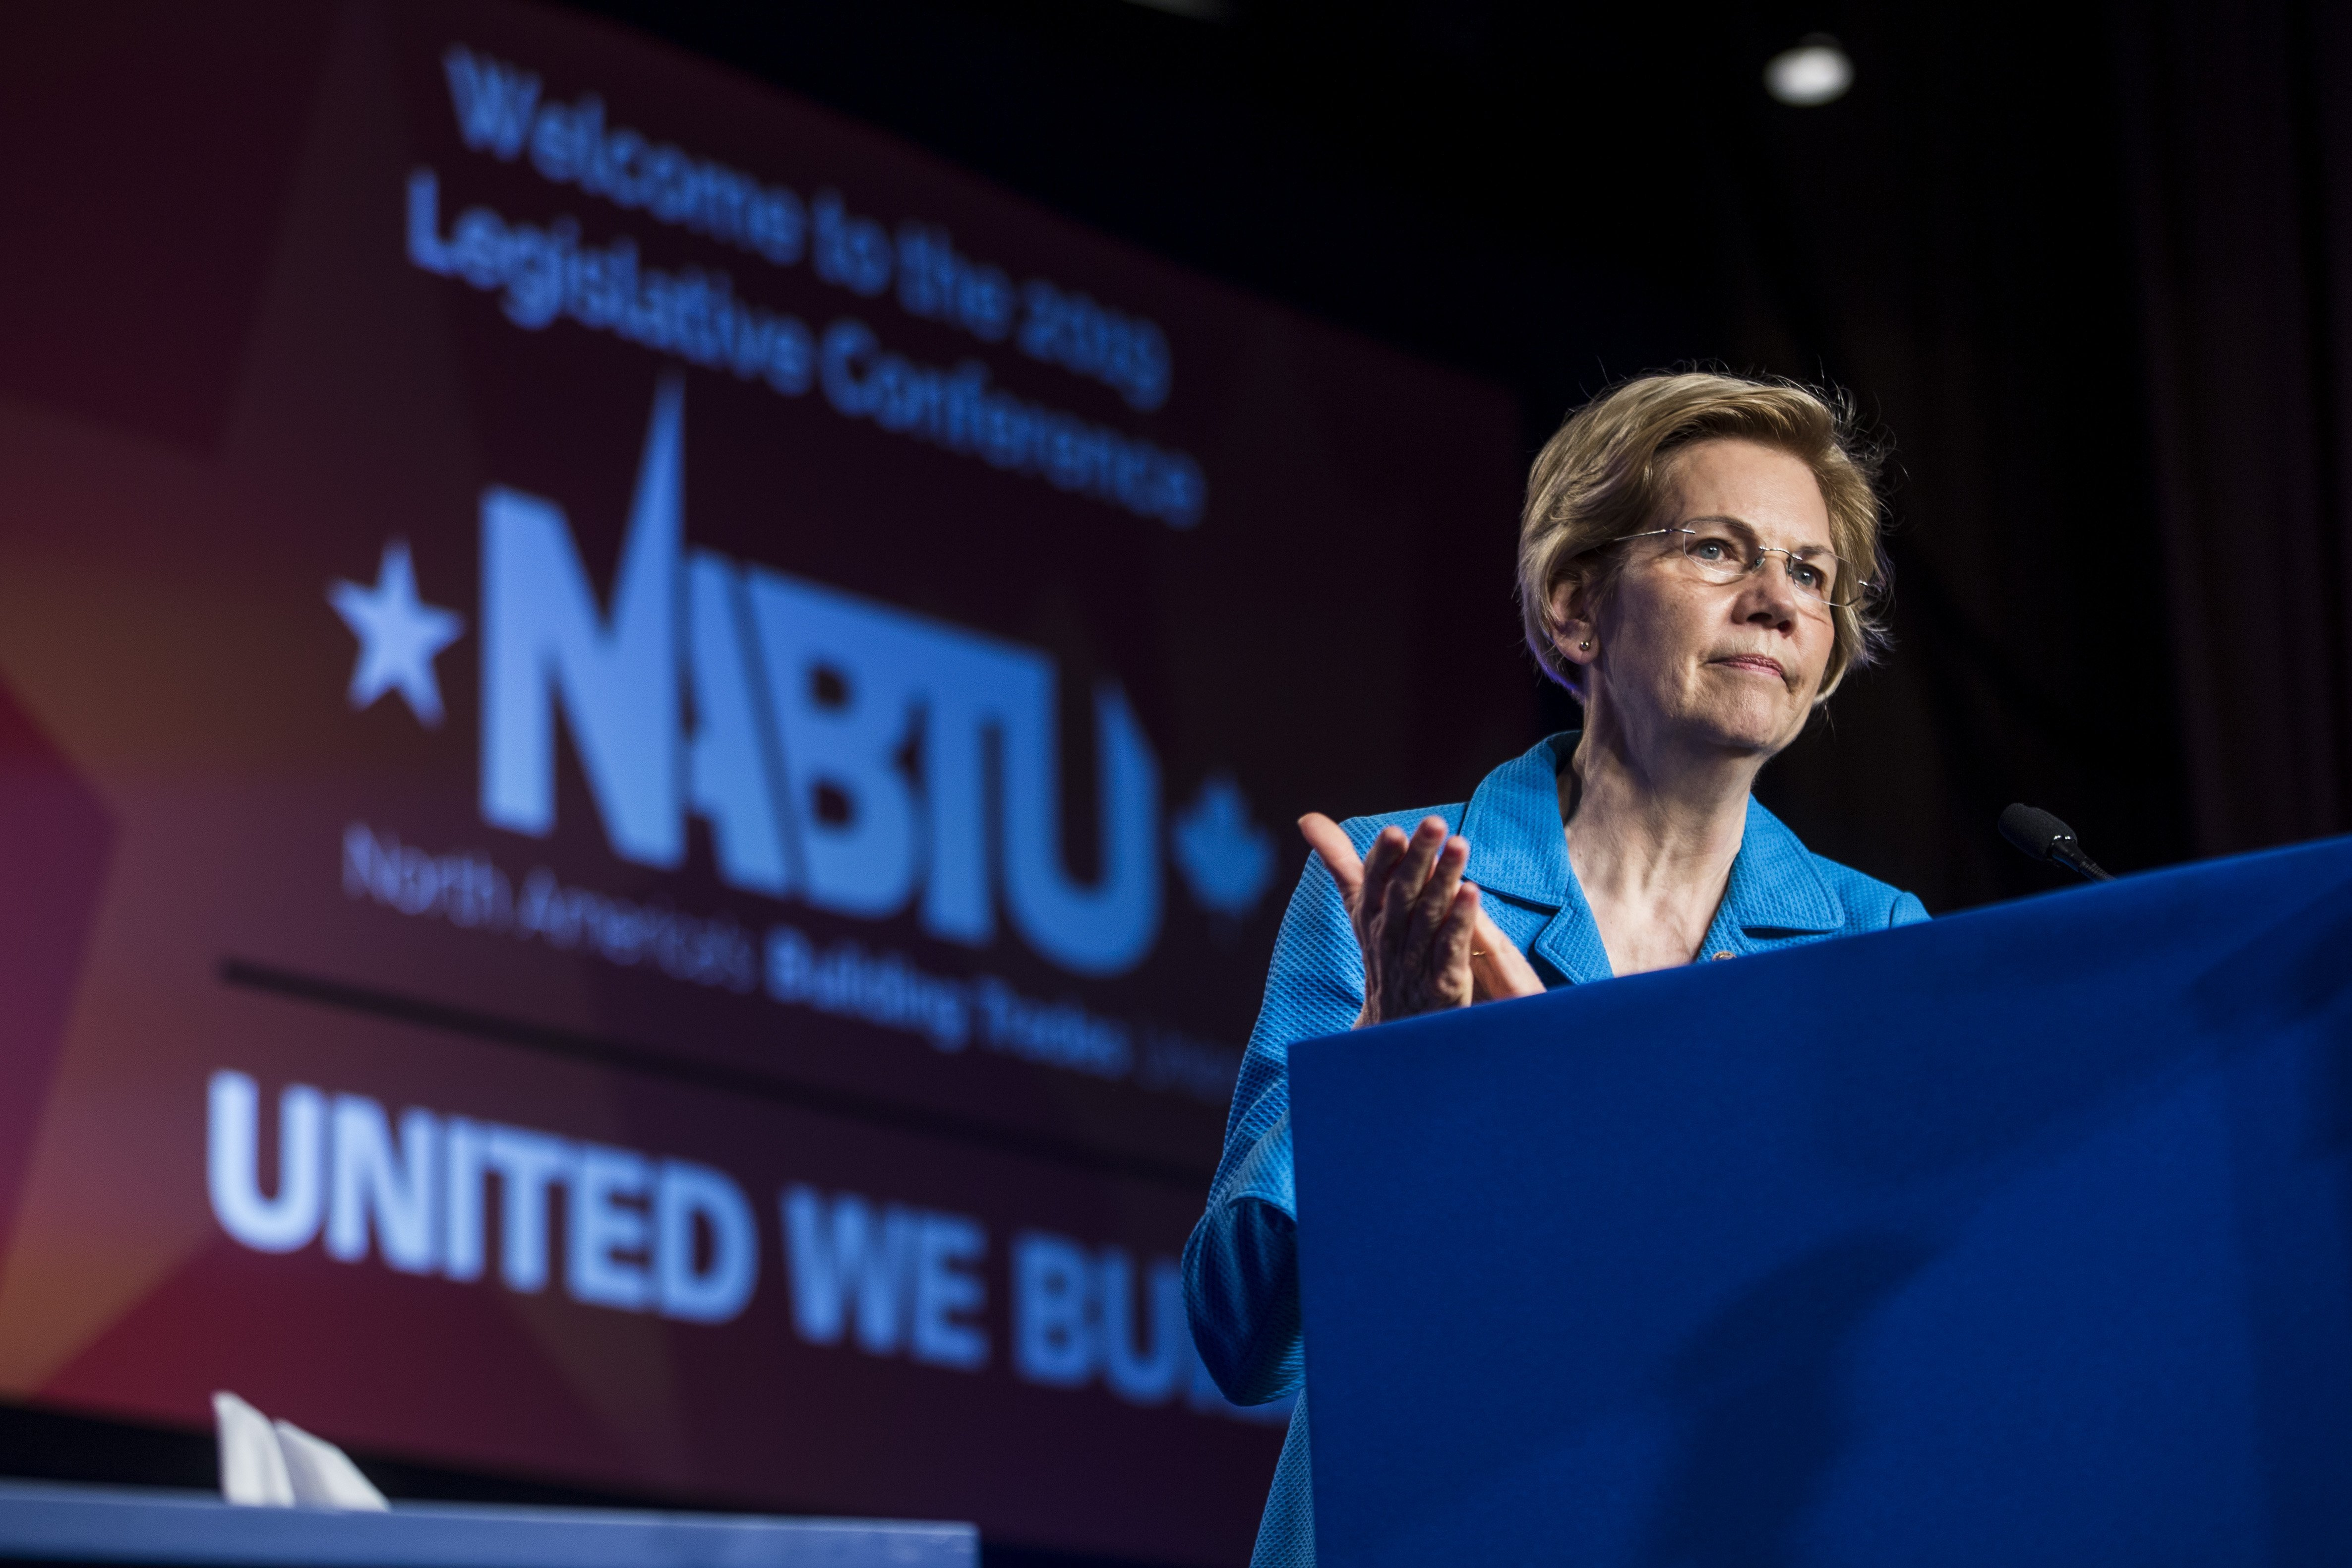 Here's what fueled Elizabeth Warren's giant 2nd quarter fundraising haul